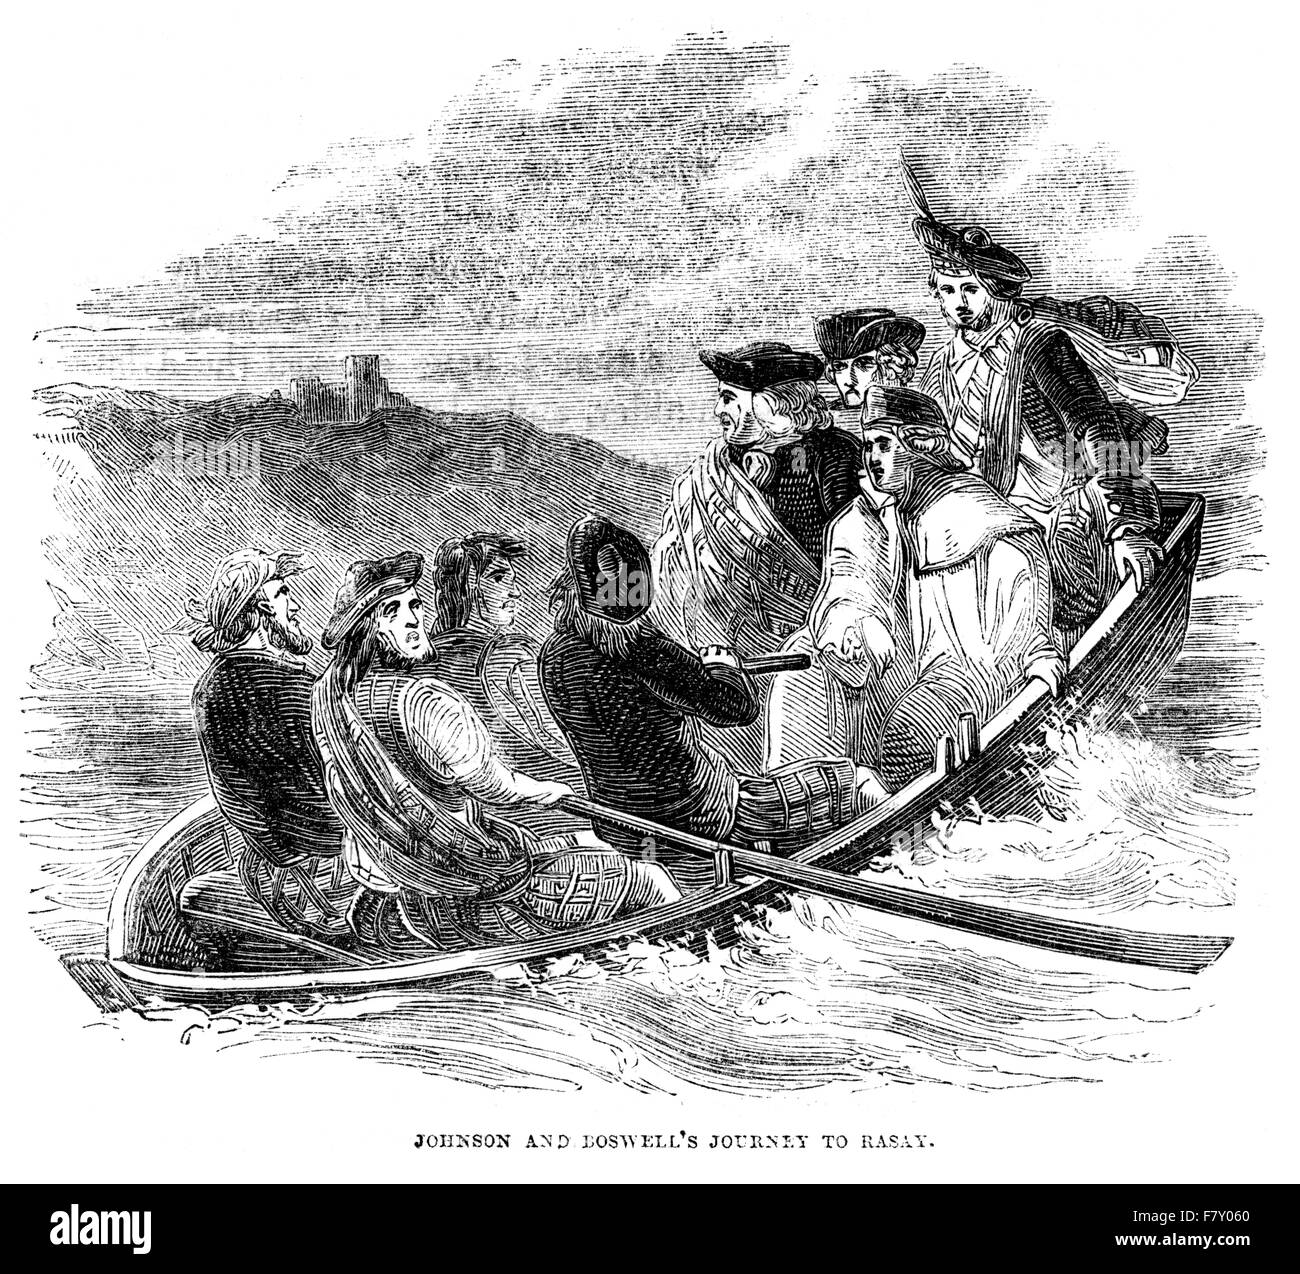 Engraving of Doctor Johnson & James Boswell's Journey to Rasay (Raasay) scanned at high resolution from - Stock Image